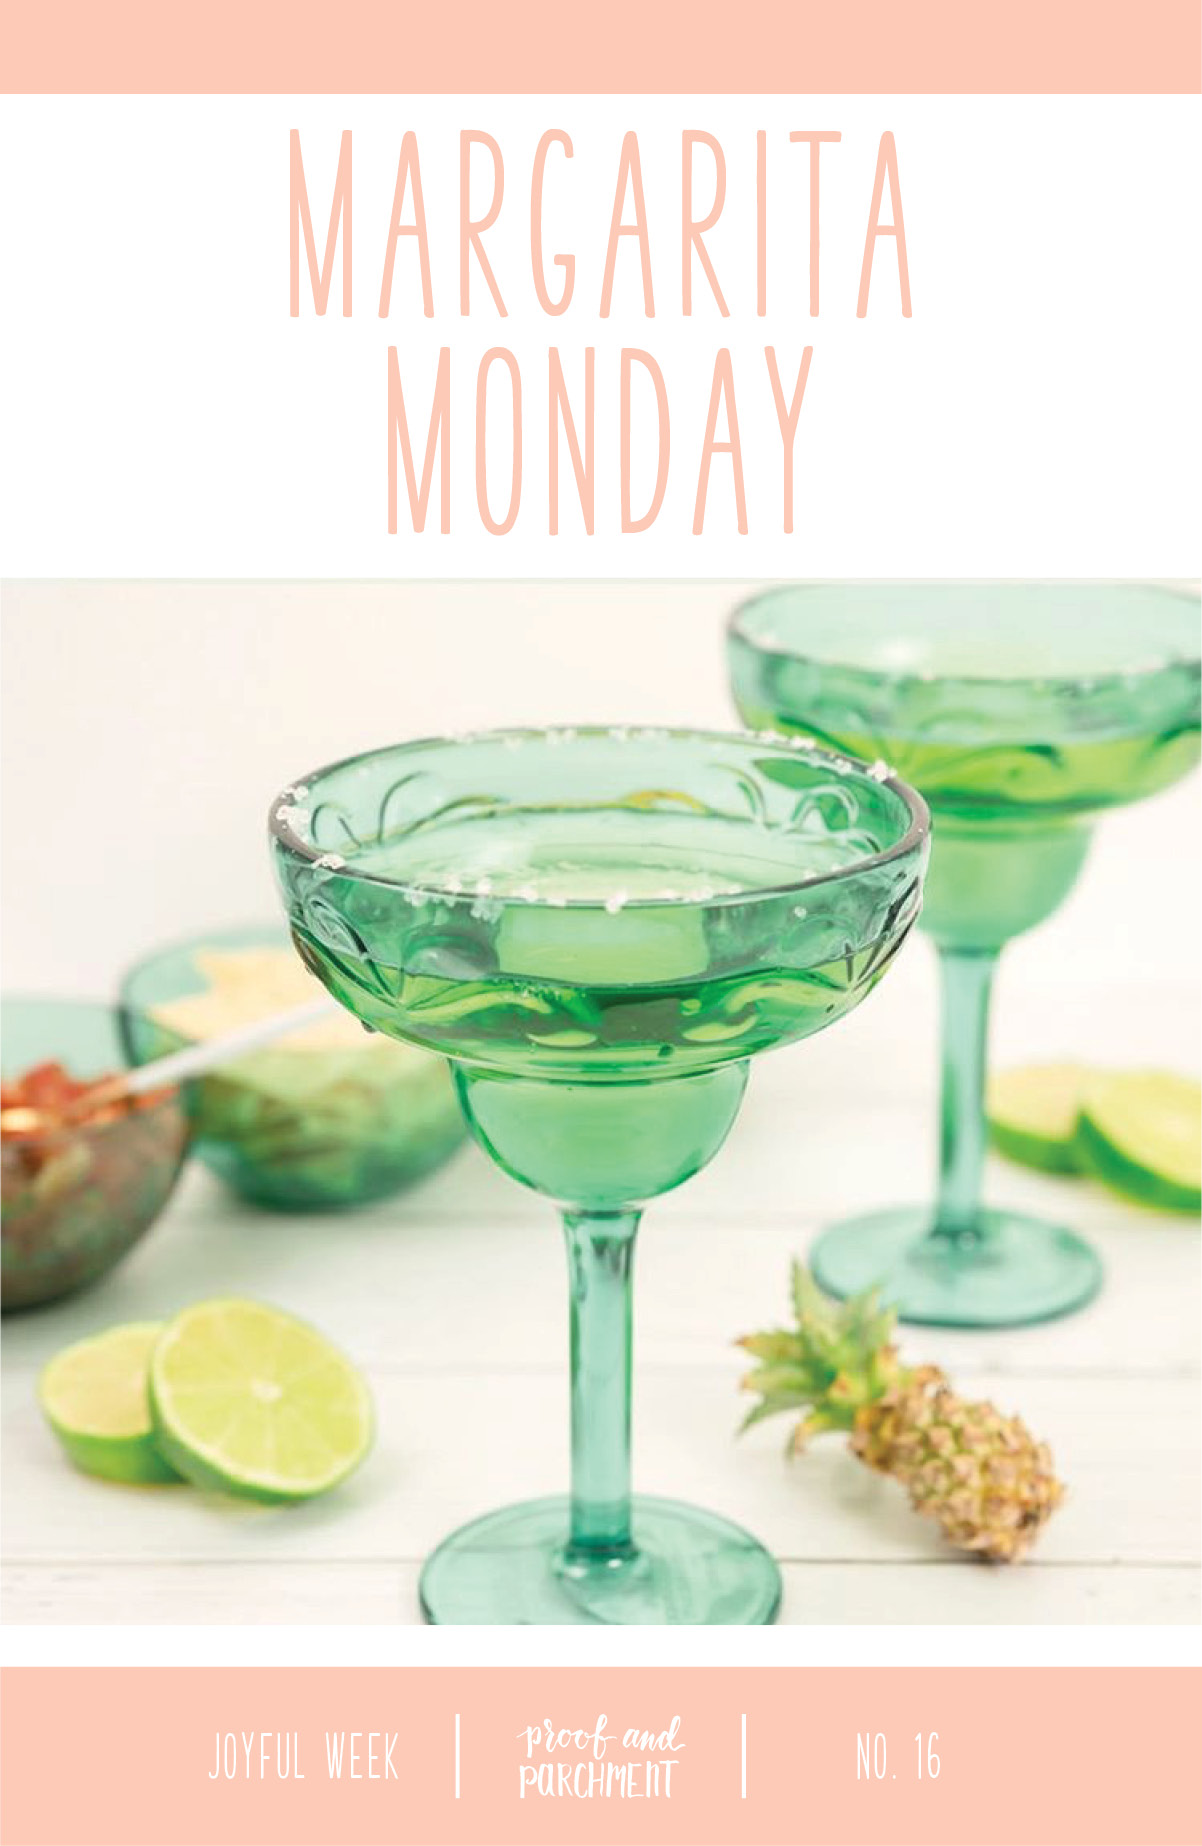 Joyful Week at Proof & Parchment no. 16: Margarita Monday